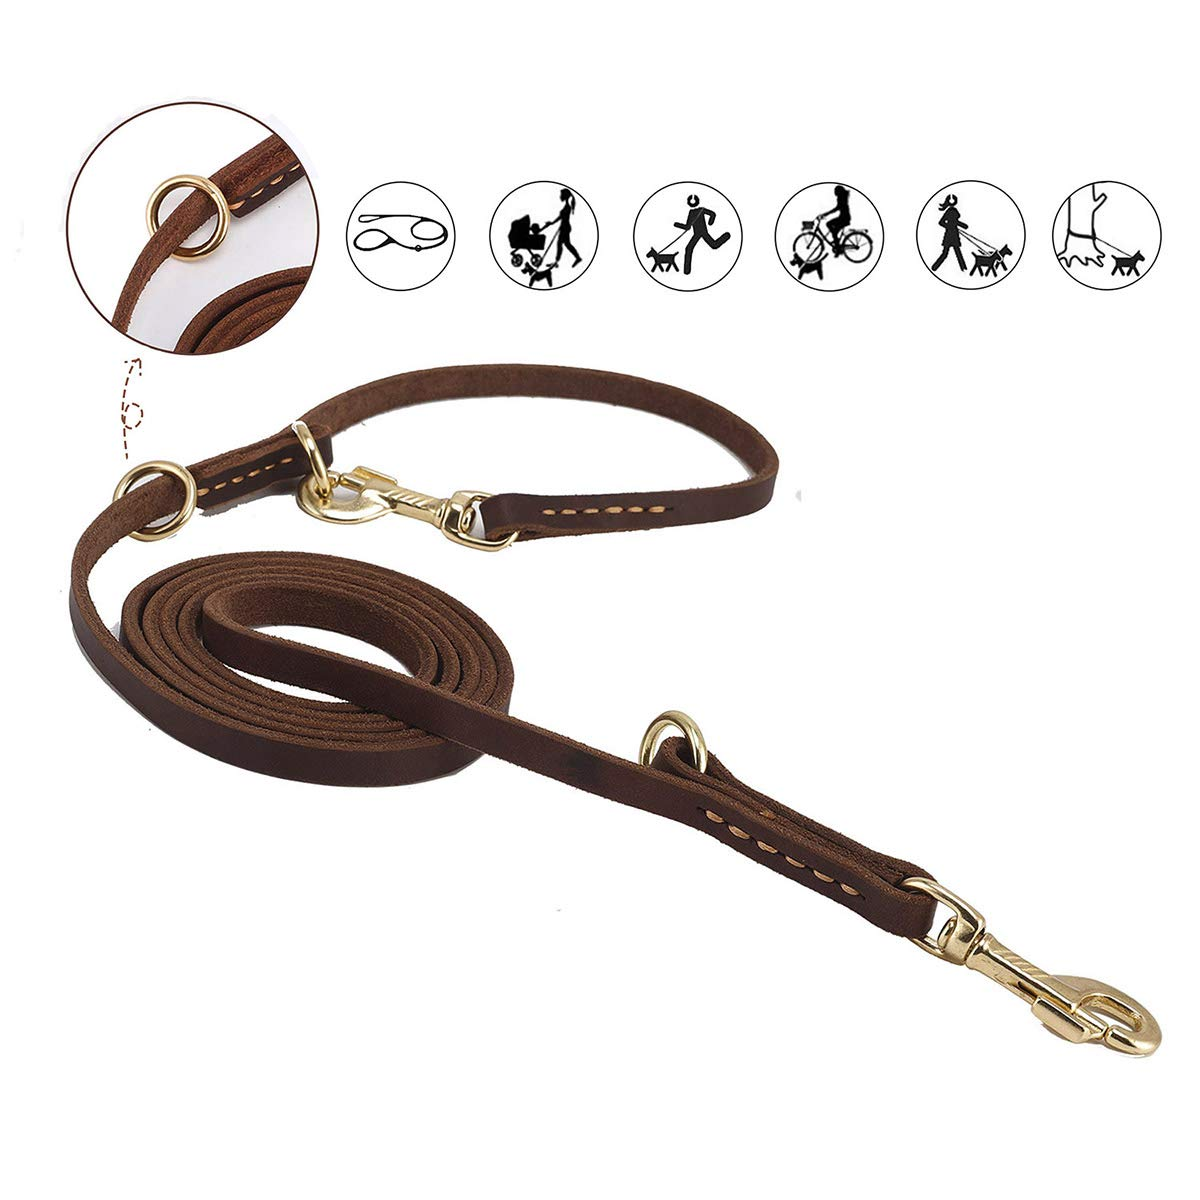 Durable Multi Function 8ft Dog Leash, Genuine Leather Training Leash for Small, Medium and Large Dogs